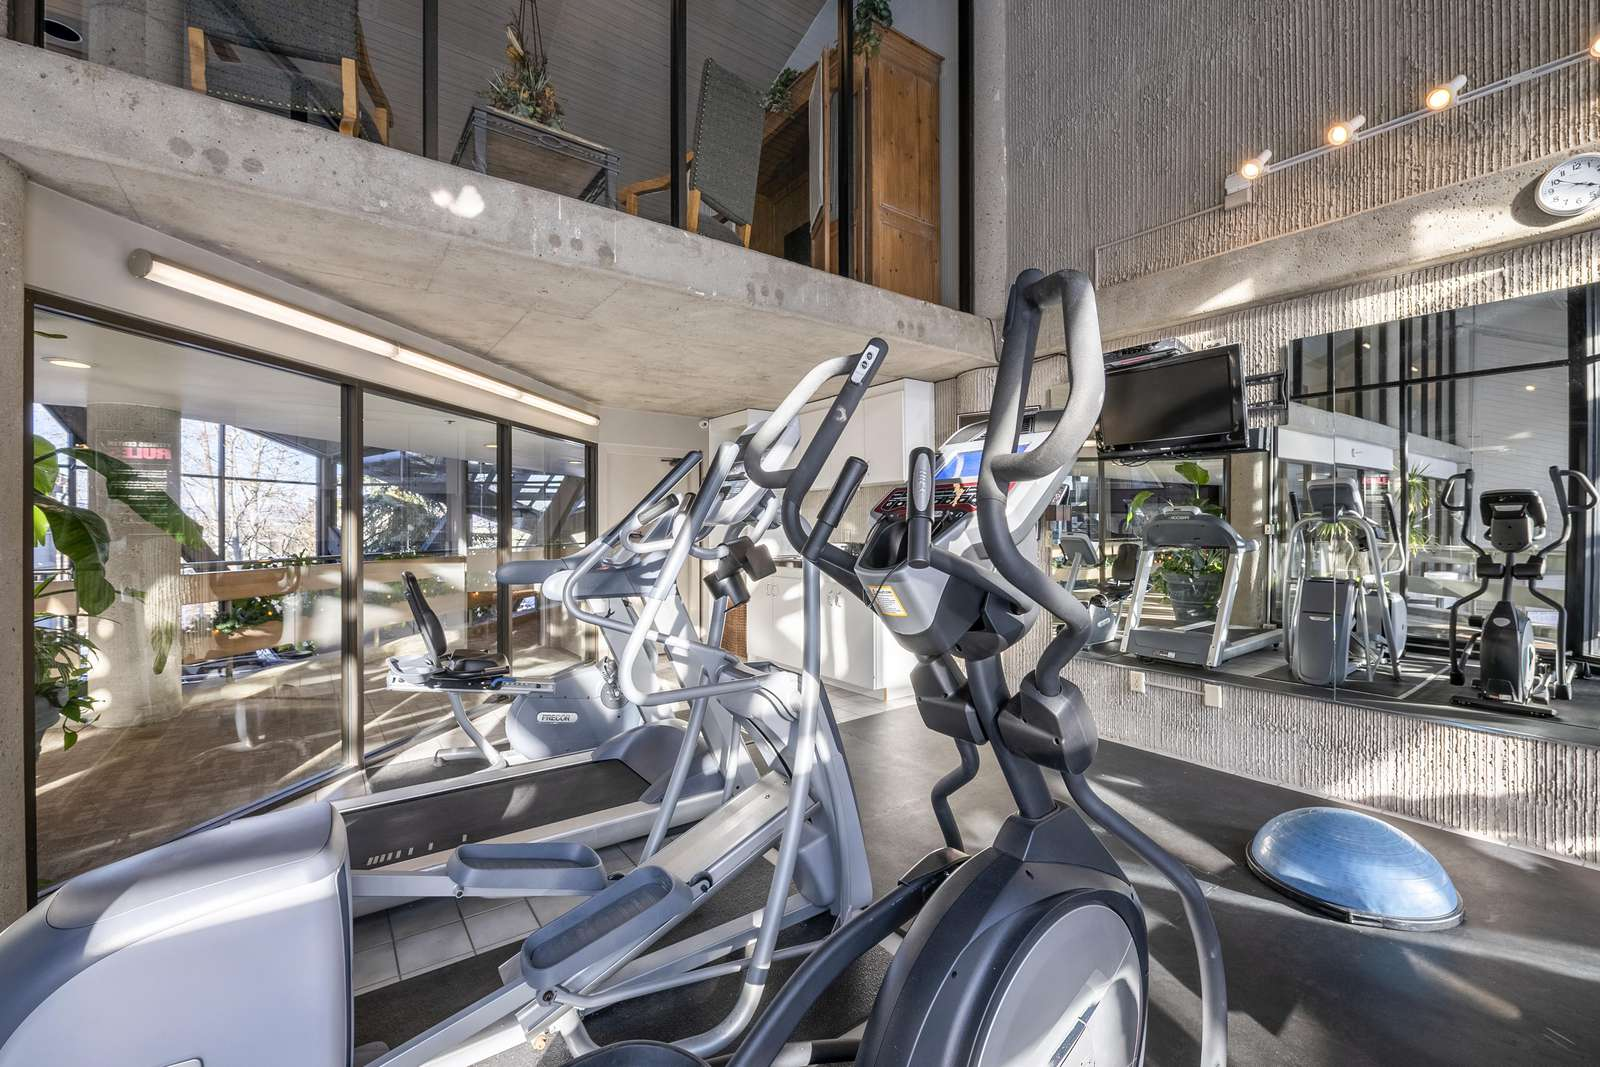 Exercise equipment is on the same level as the condo